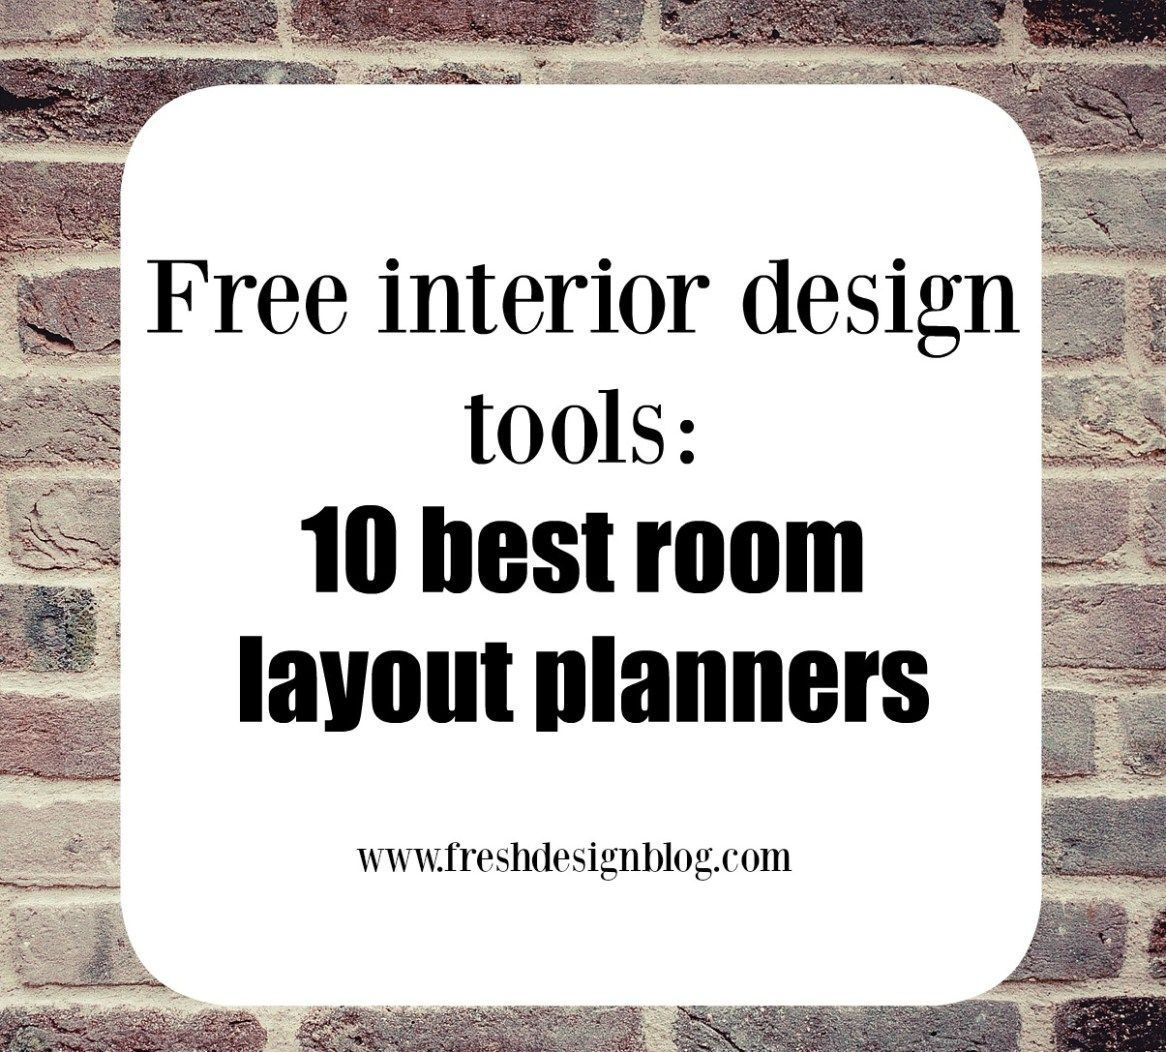 Learn How To Re Design And Plan A Room Using These Fab Free Interior Design Room Planning And Room Layout Planner Online Interior Design Free Interior Design